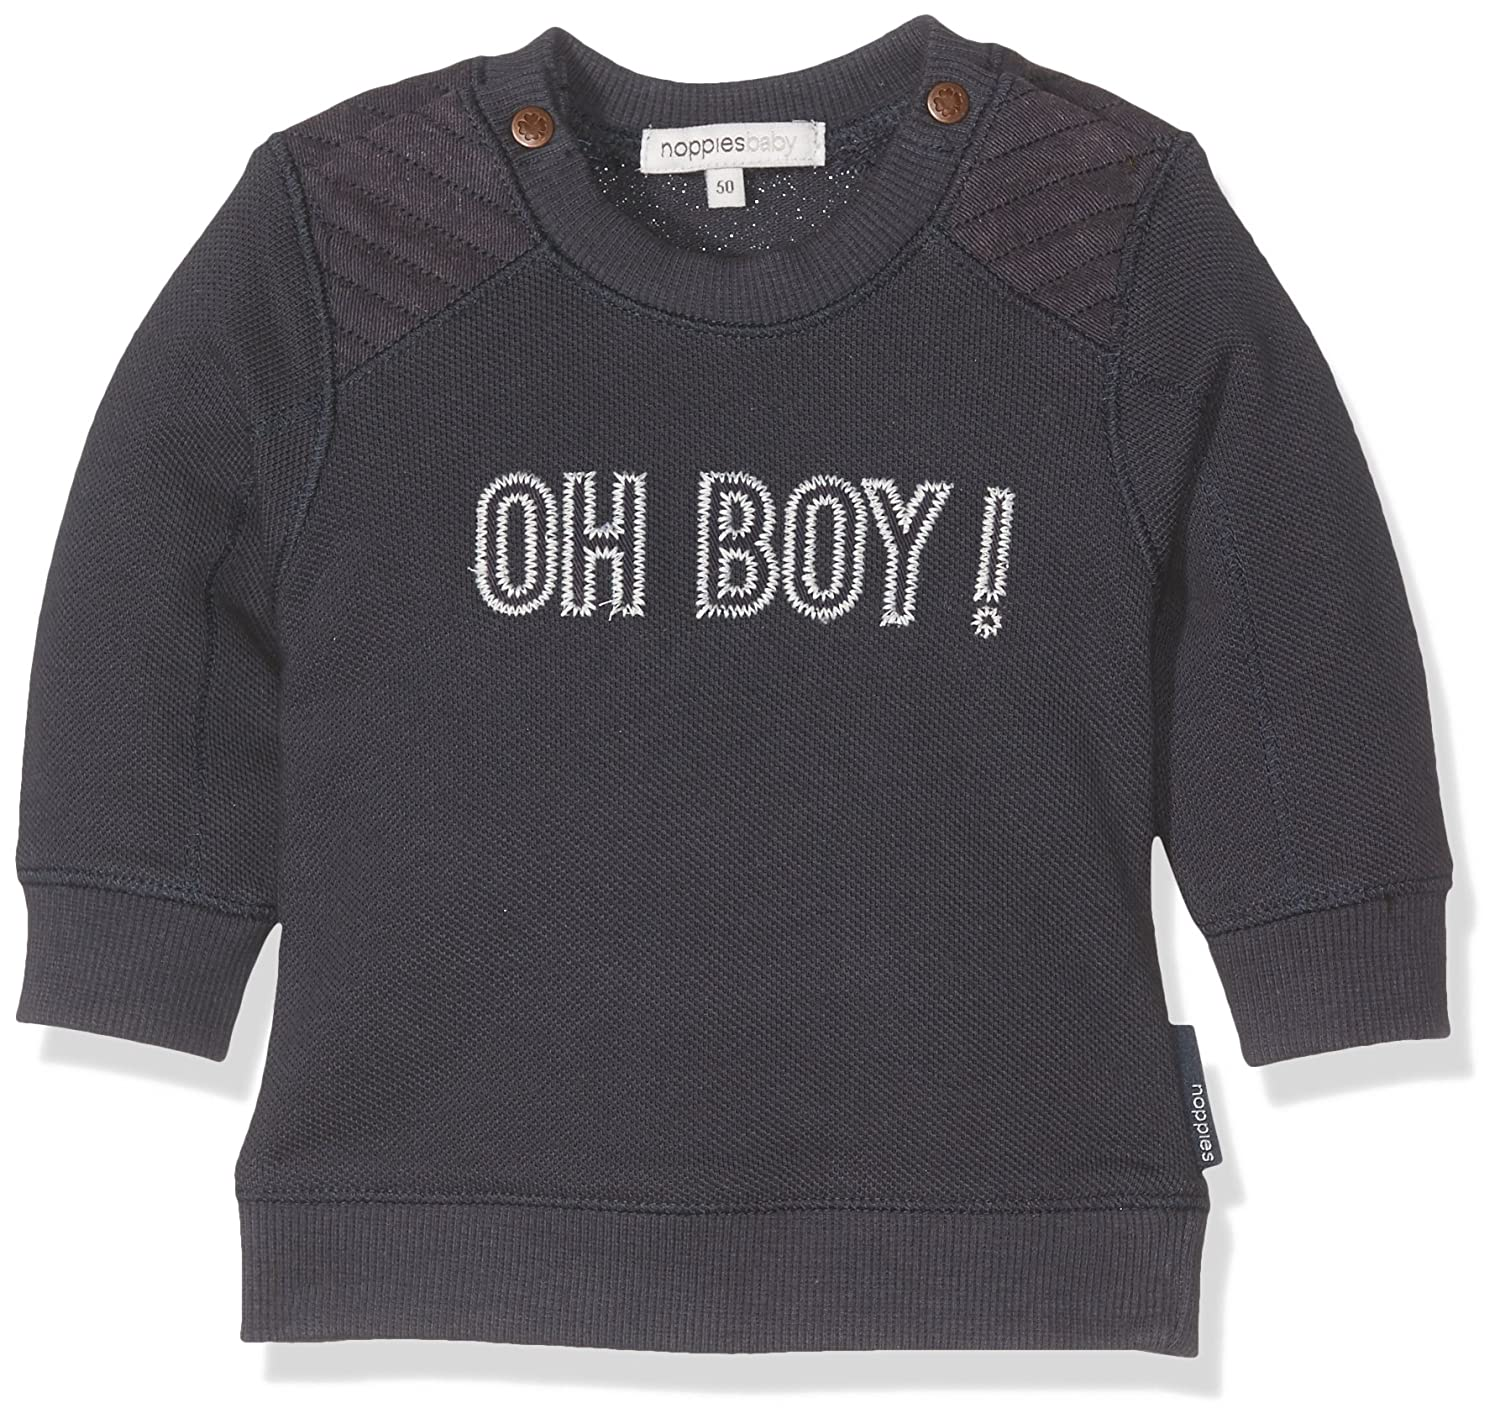 Noppies B Sweater Hewlett, Shirt Bébé garçon 74541